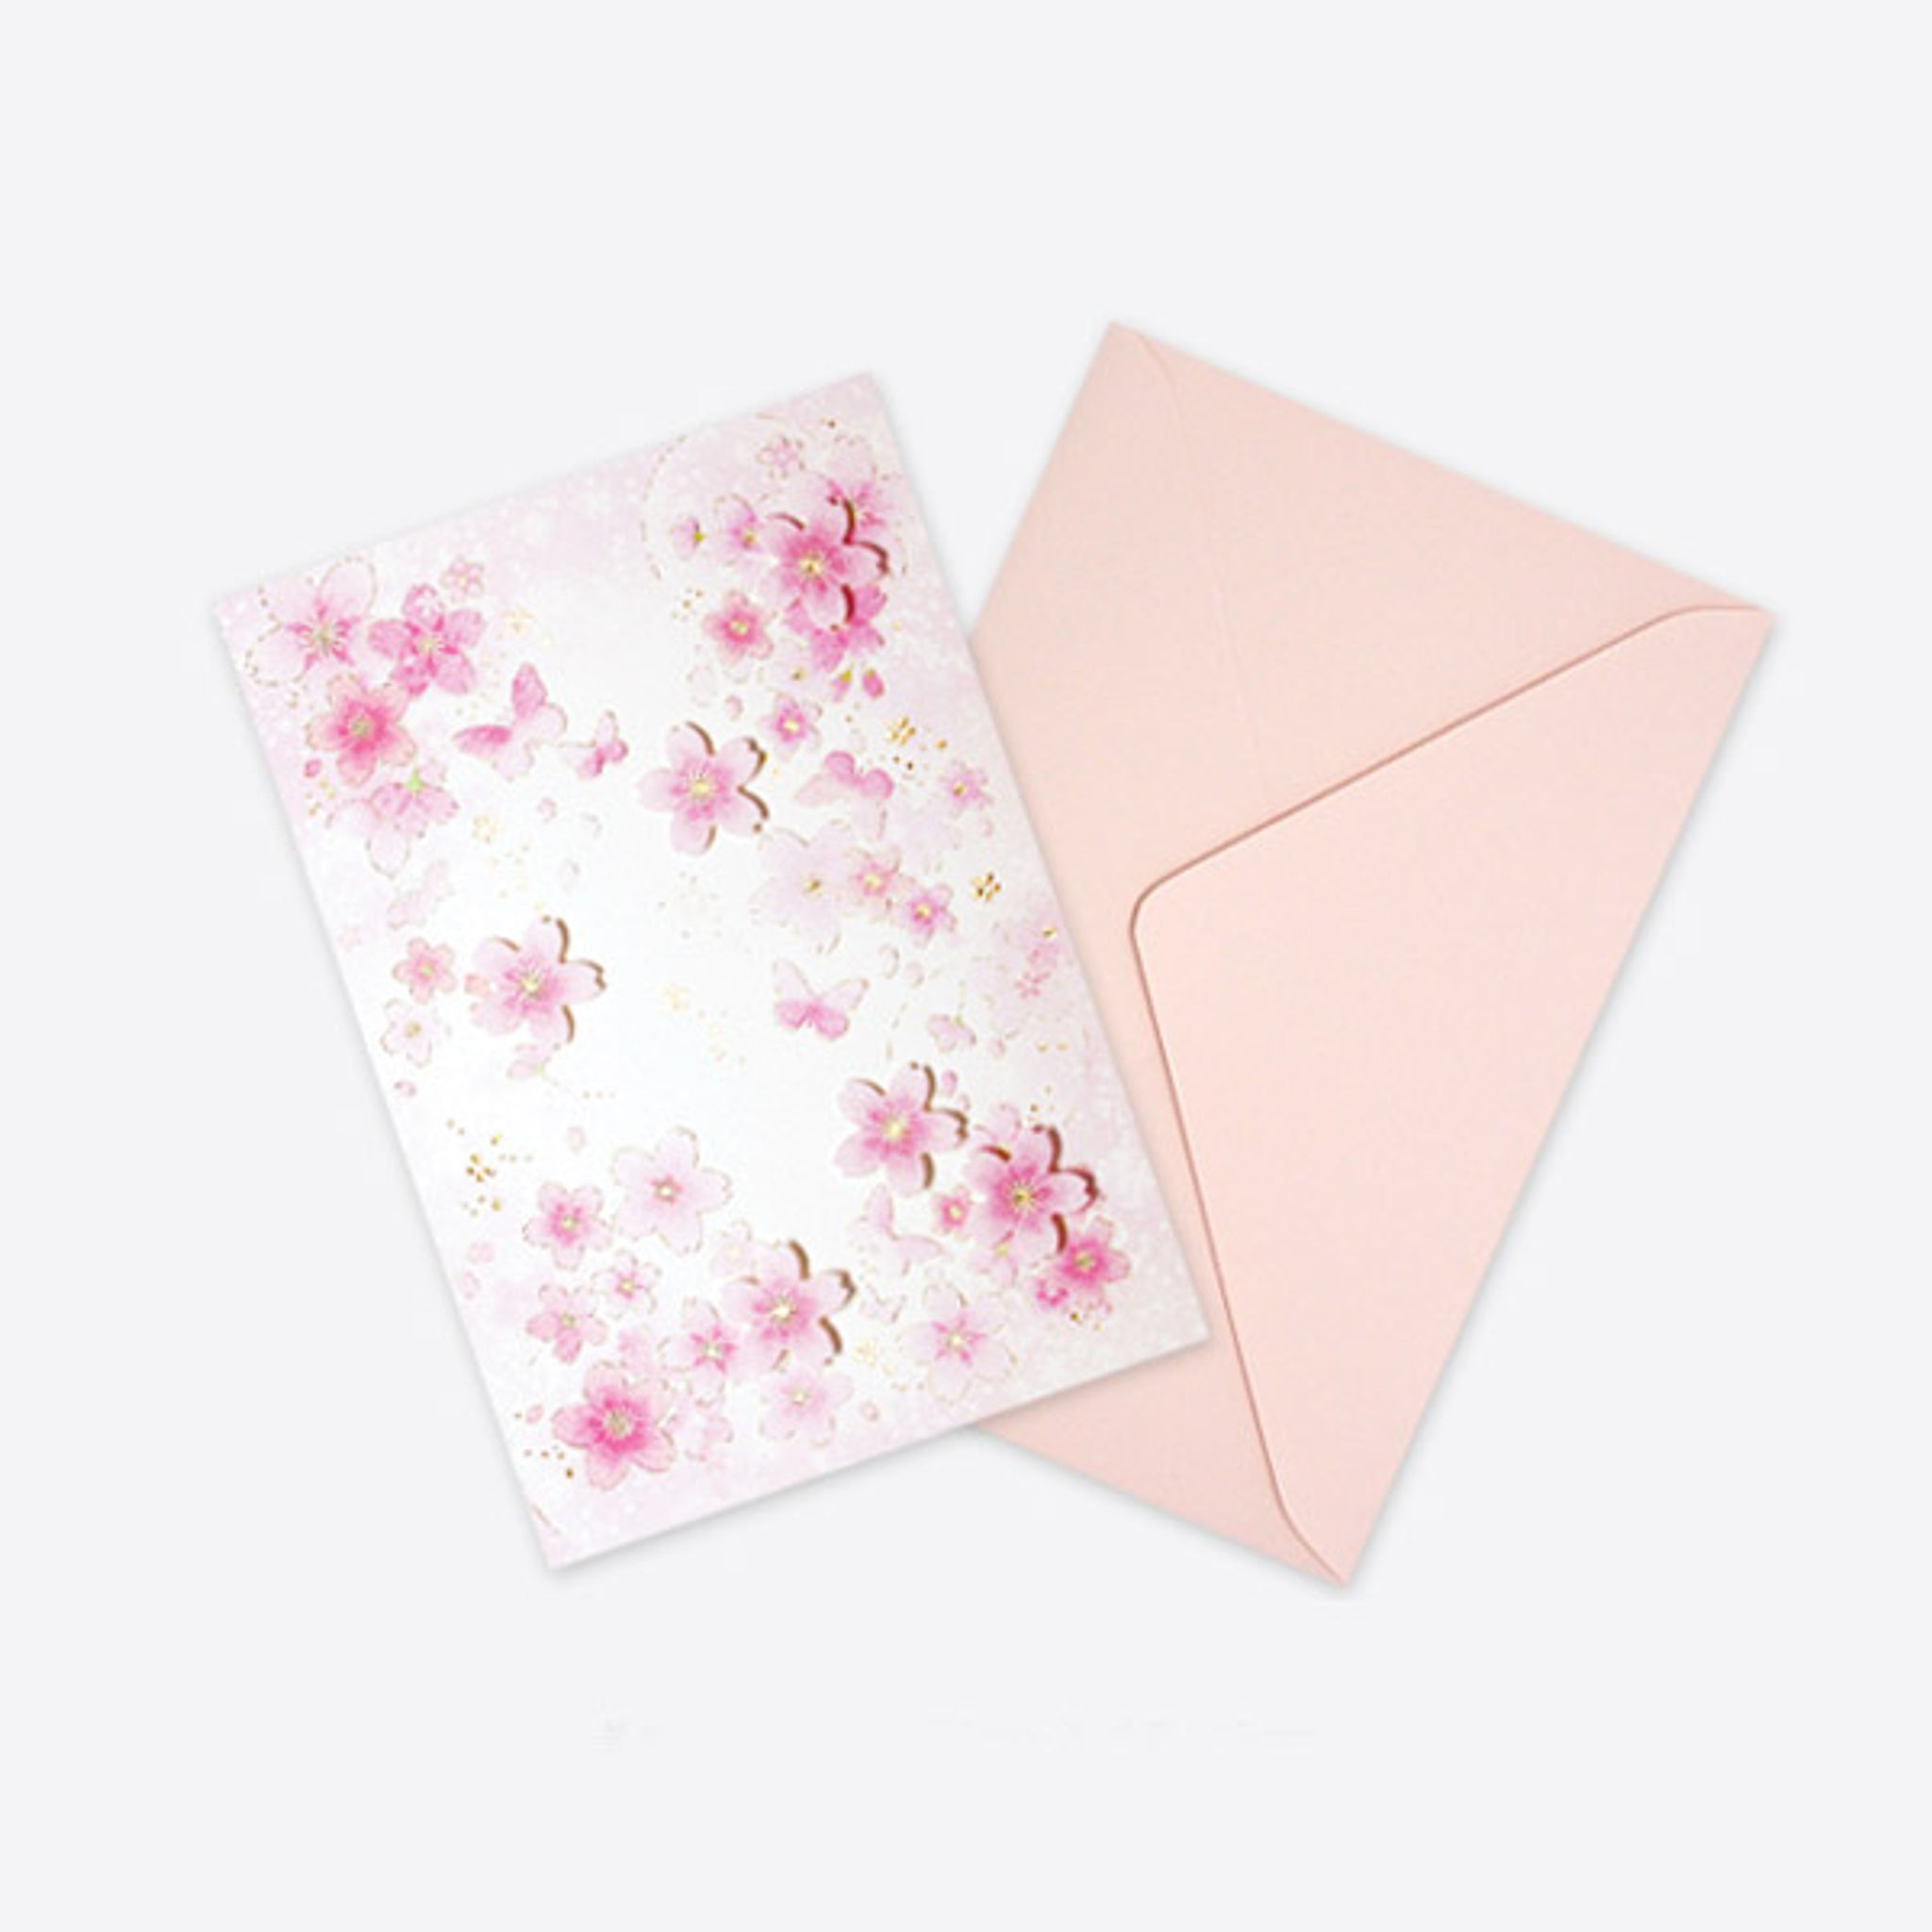 D'Won 3D Pop-up Card - Butterfly Light Pink